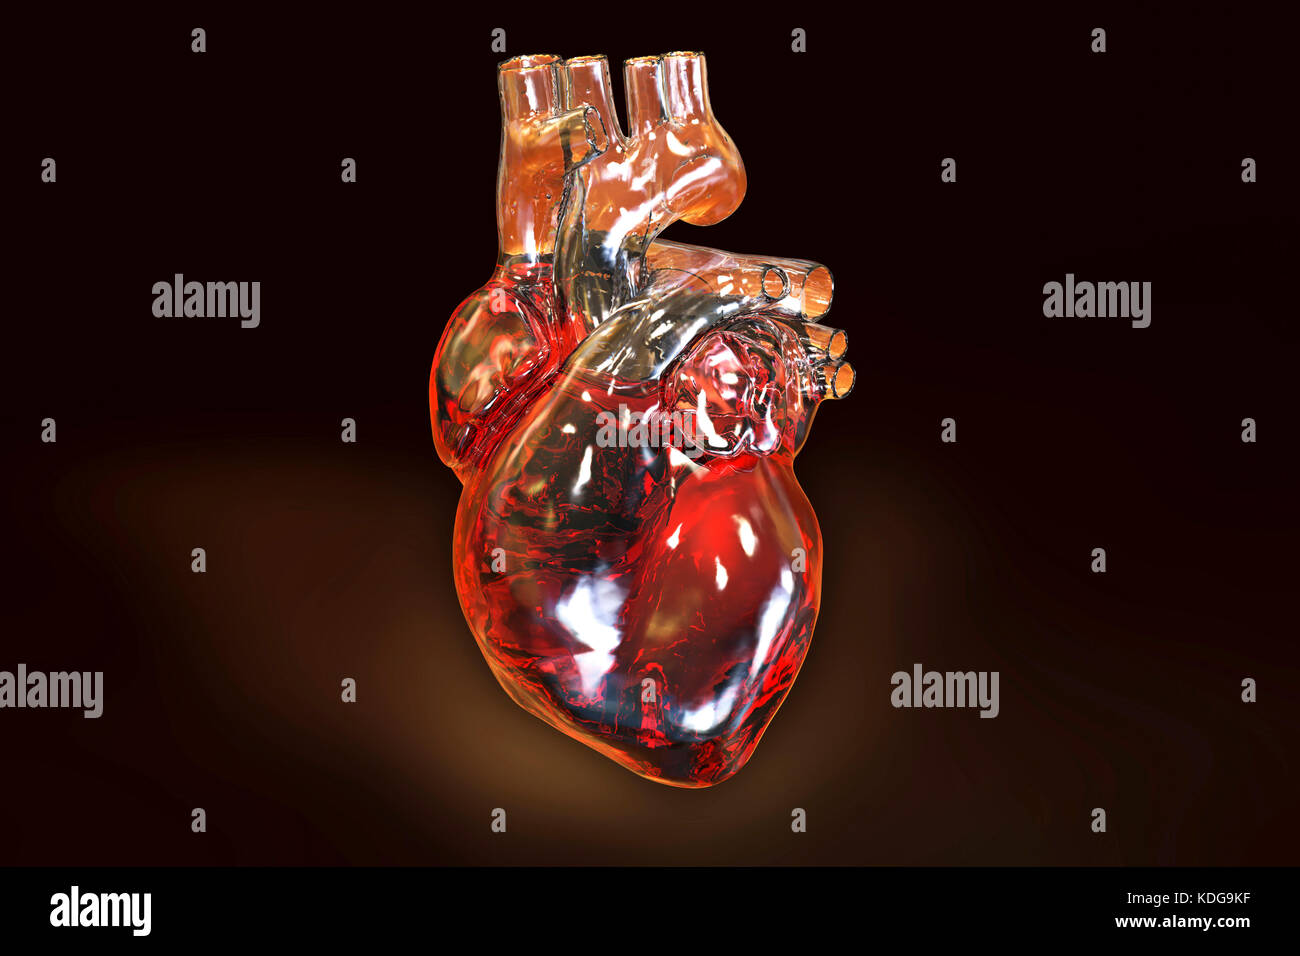 Computer illustration of the heart with coronary vessels. - Stock Image